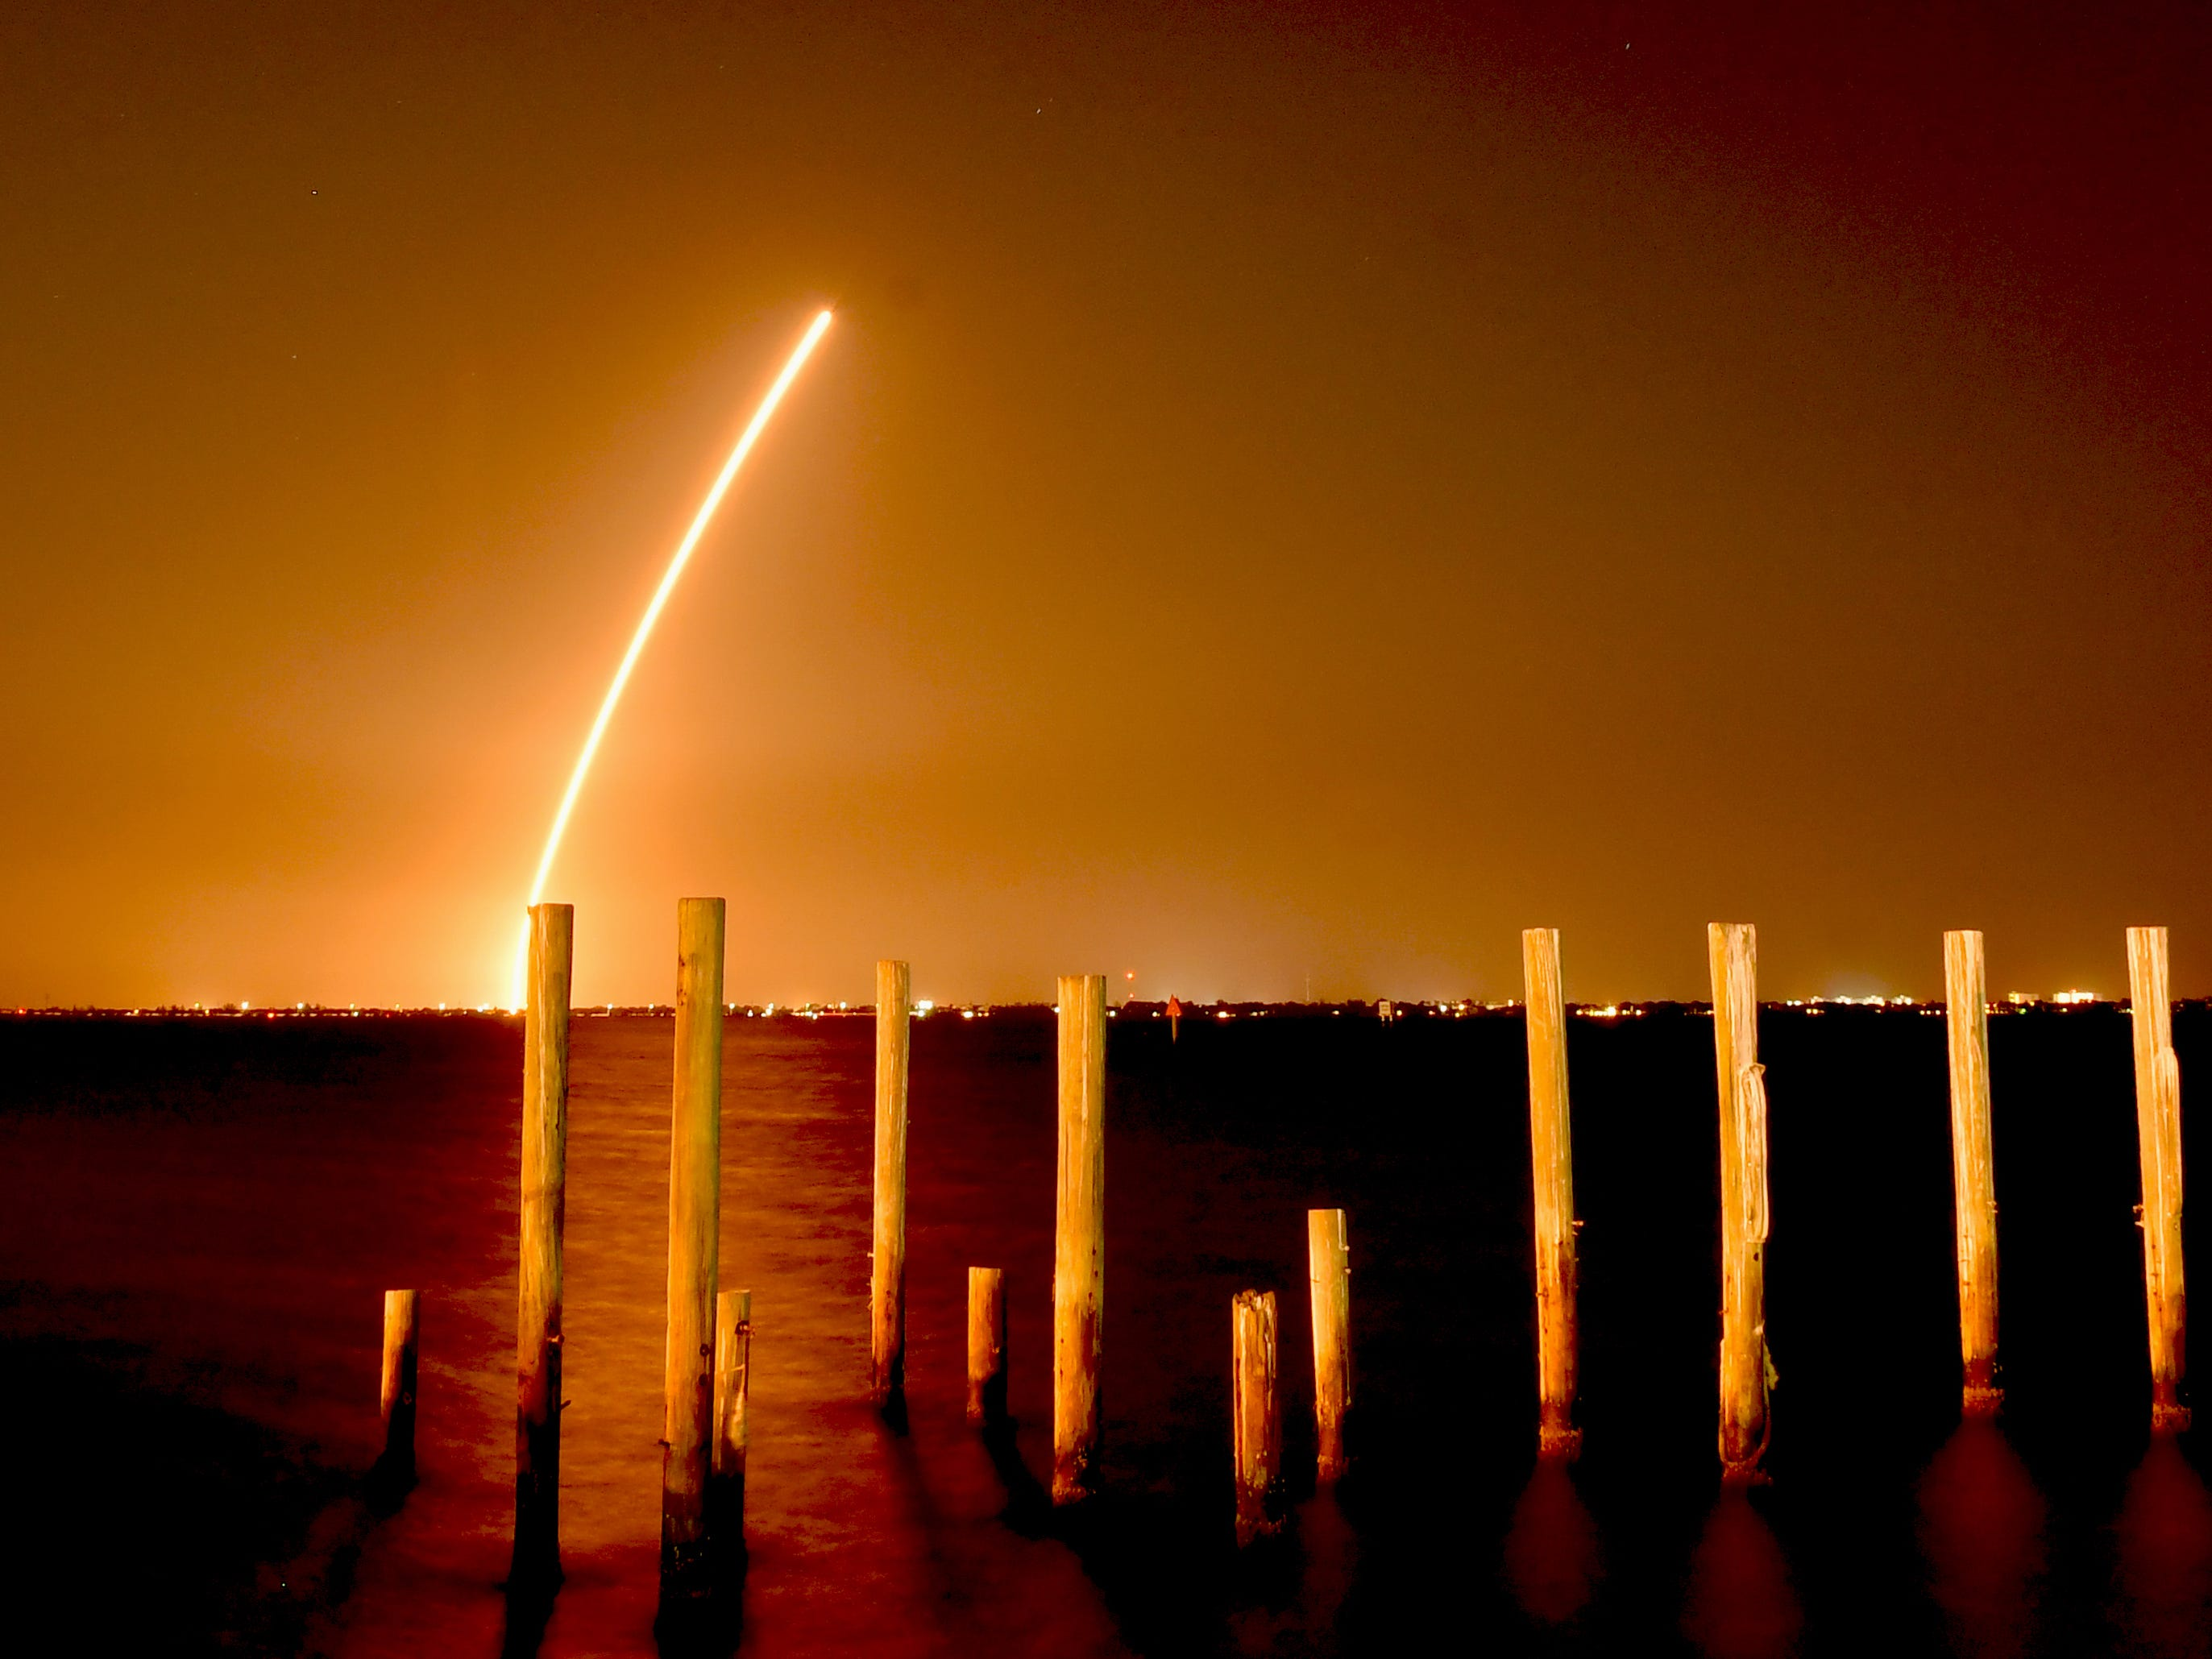 A time exposure of the Delta IV launch from Cape Canaveral Air Force Station, as seen from the edge of Indian River Lagoon, just north of the Melbourne Causeway, March, 15, 2019.